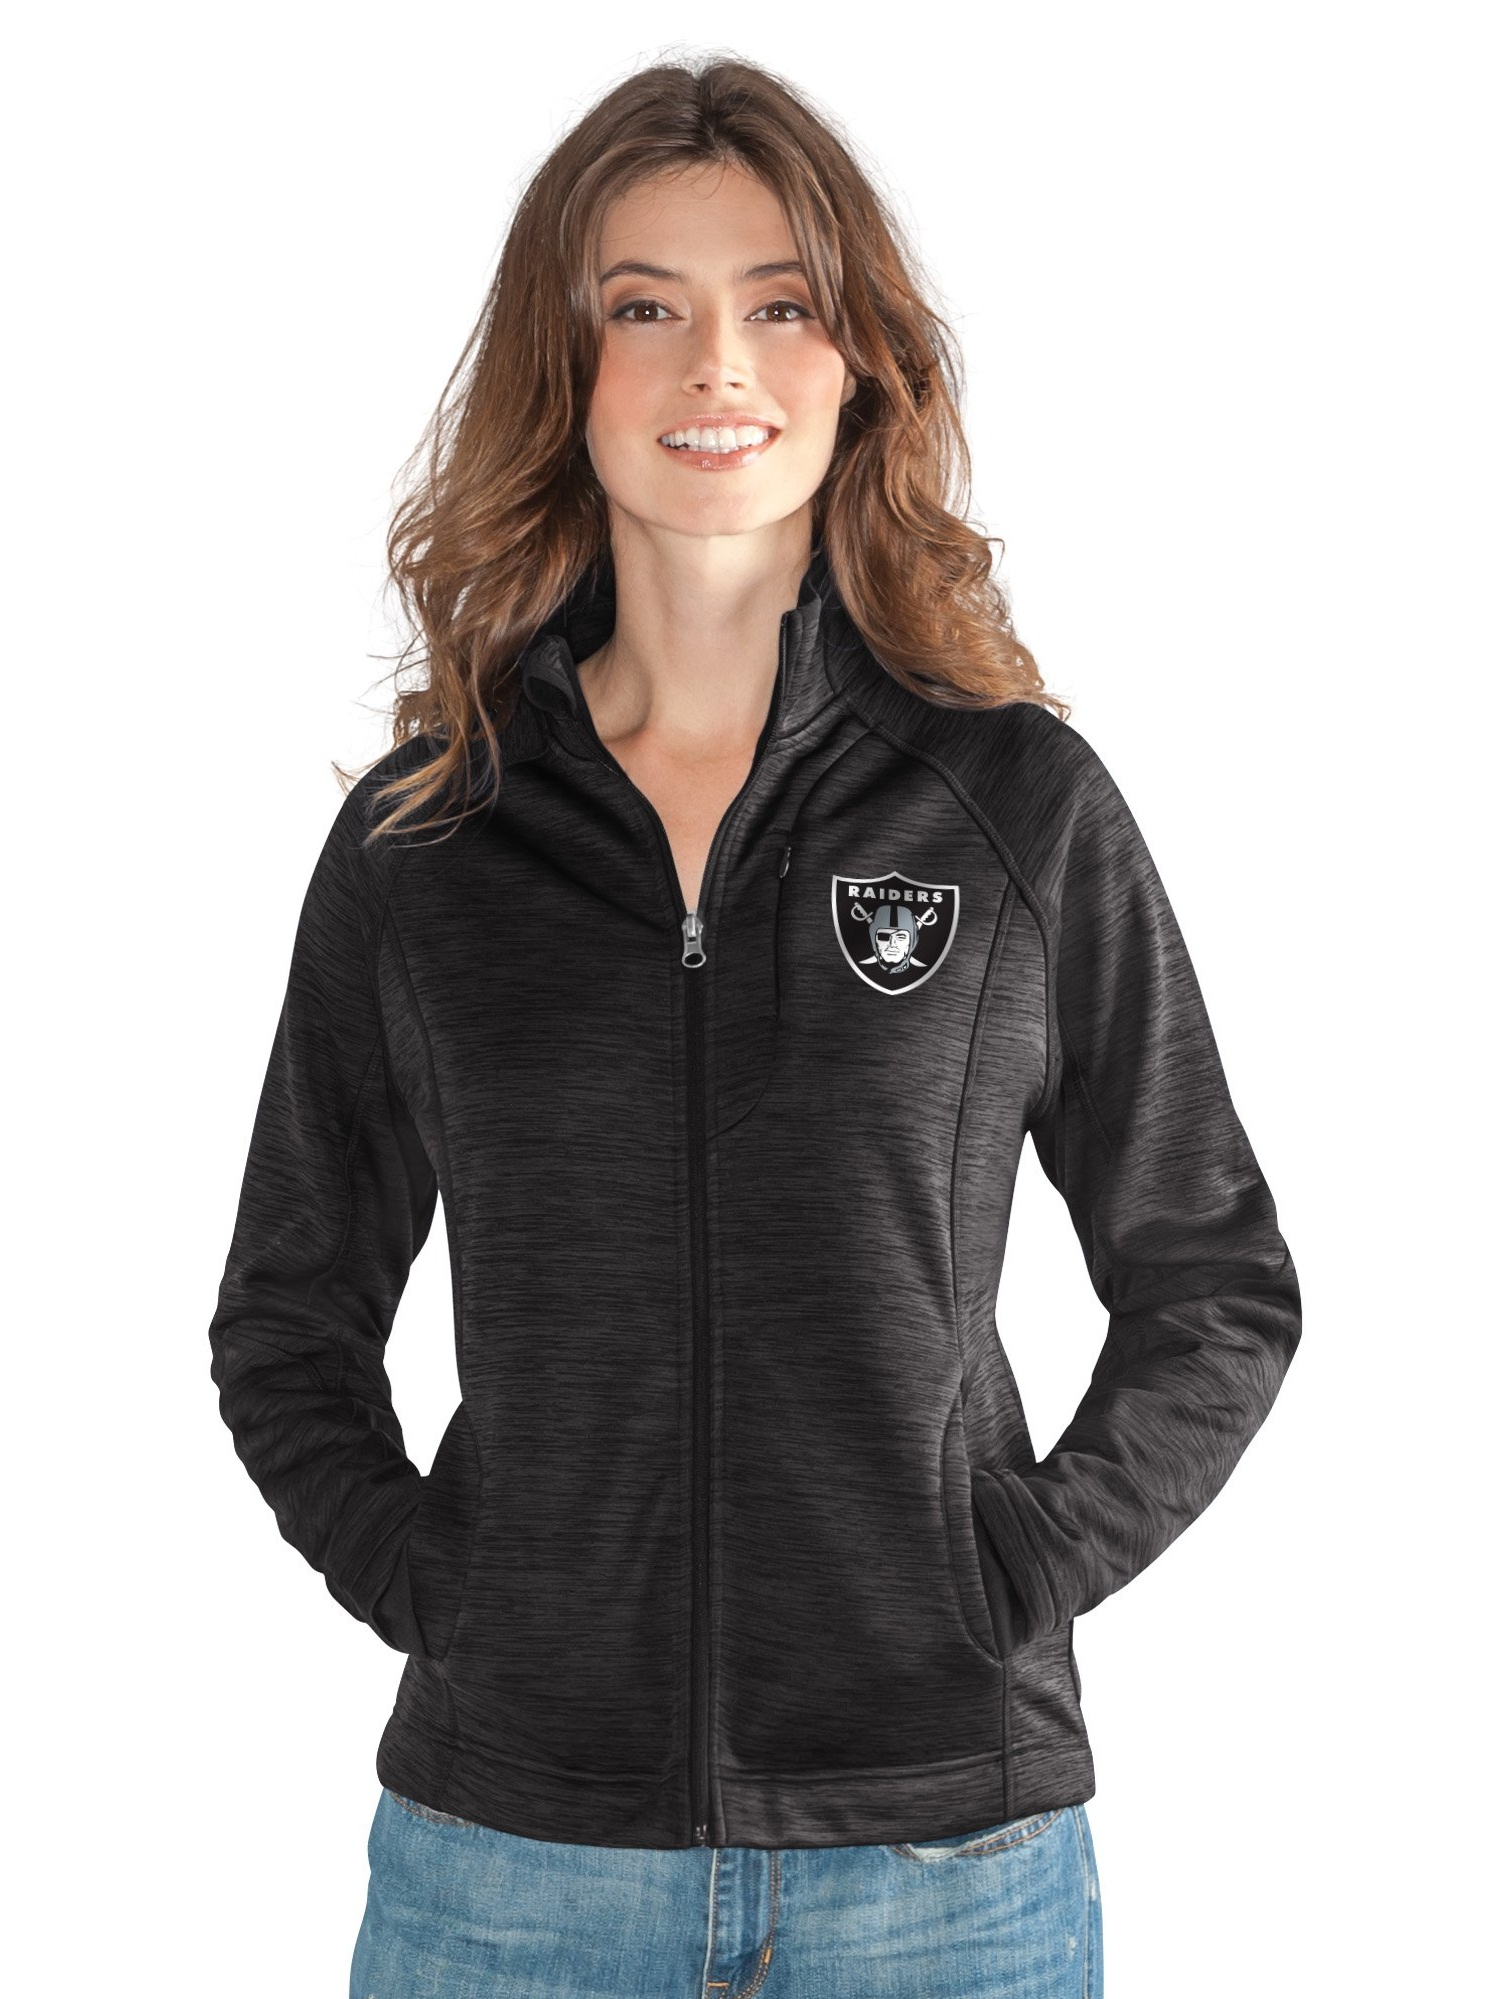 Oakland Raiders Women's Full Zip Heathered Black Track Jacket by G-III 4Her by Carl Banks